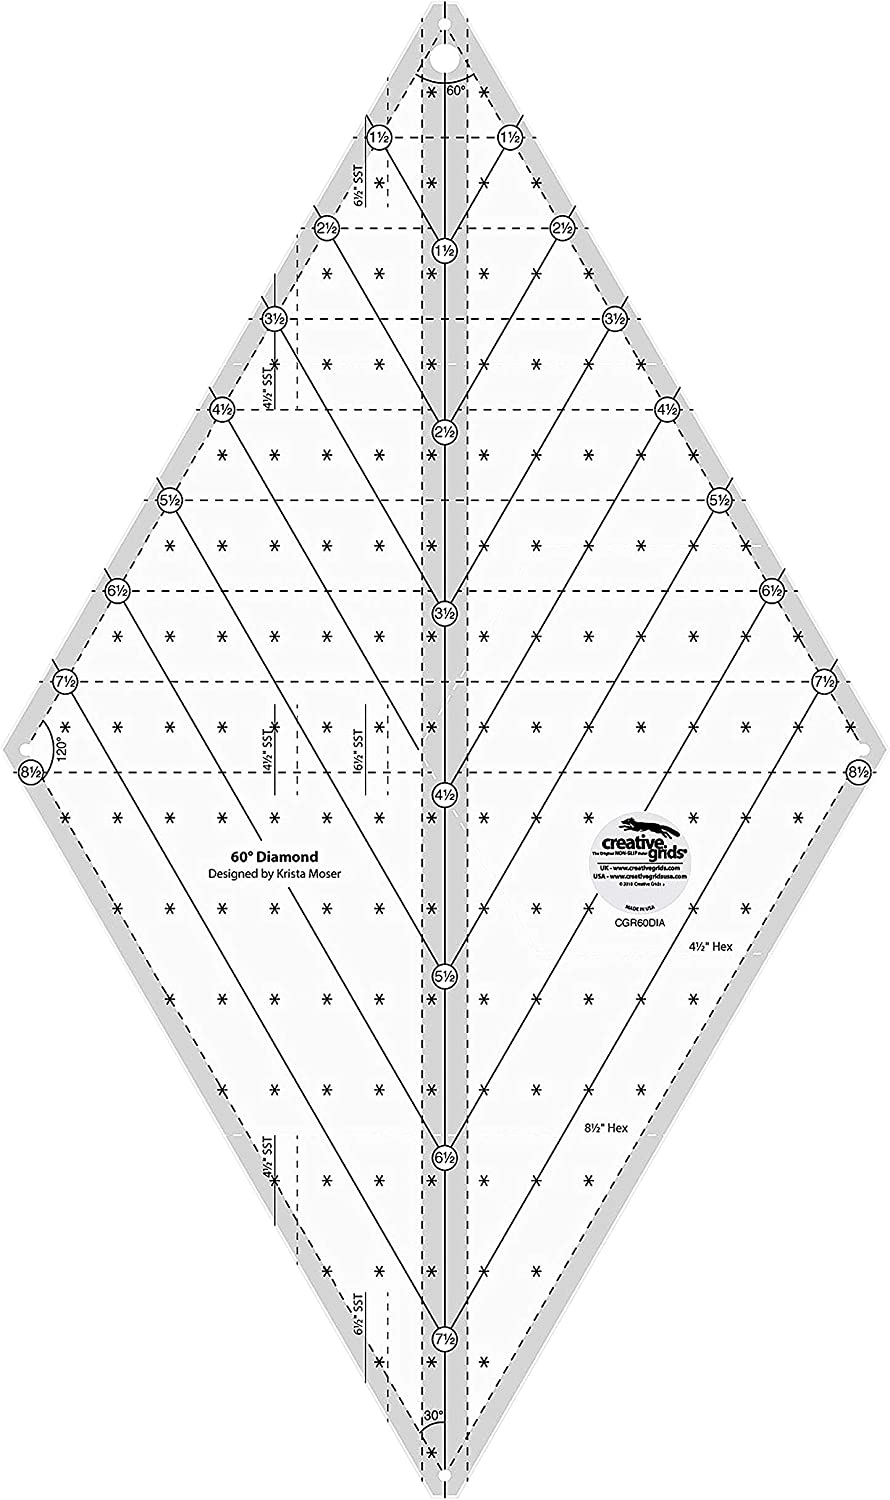 Creative Grids 60 Degree Diamond Ruler Quilting Ruler Template Designed by Krista Moser, Patented Non-Slip Grip